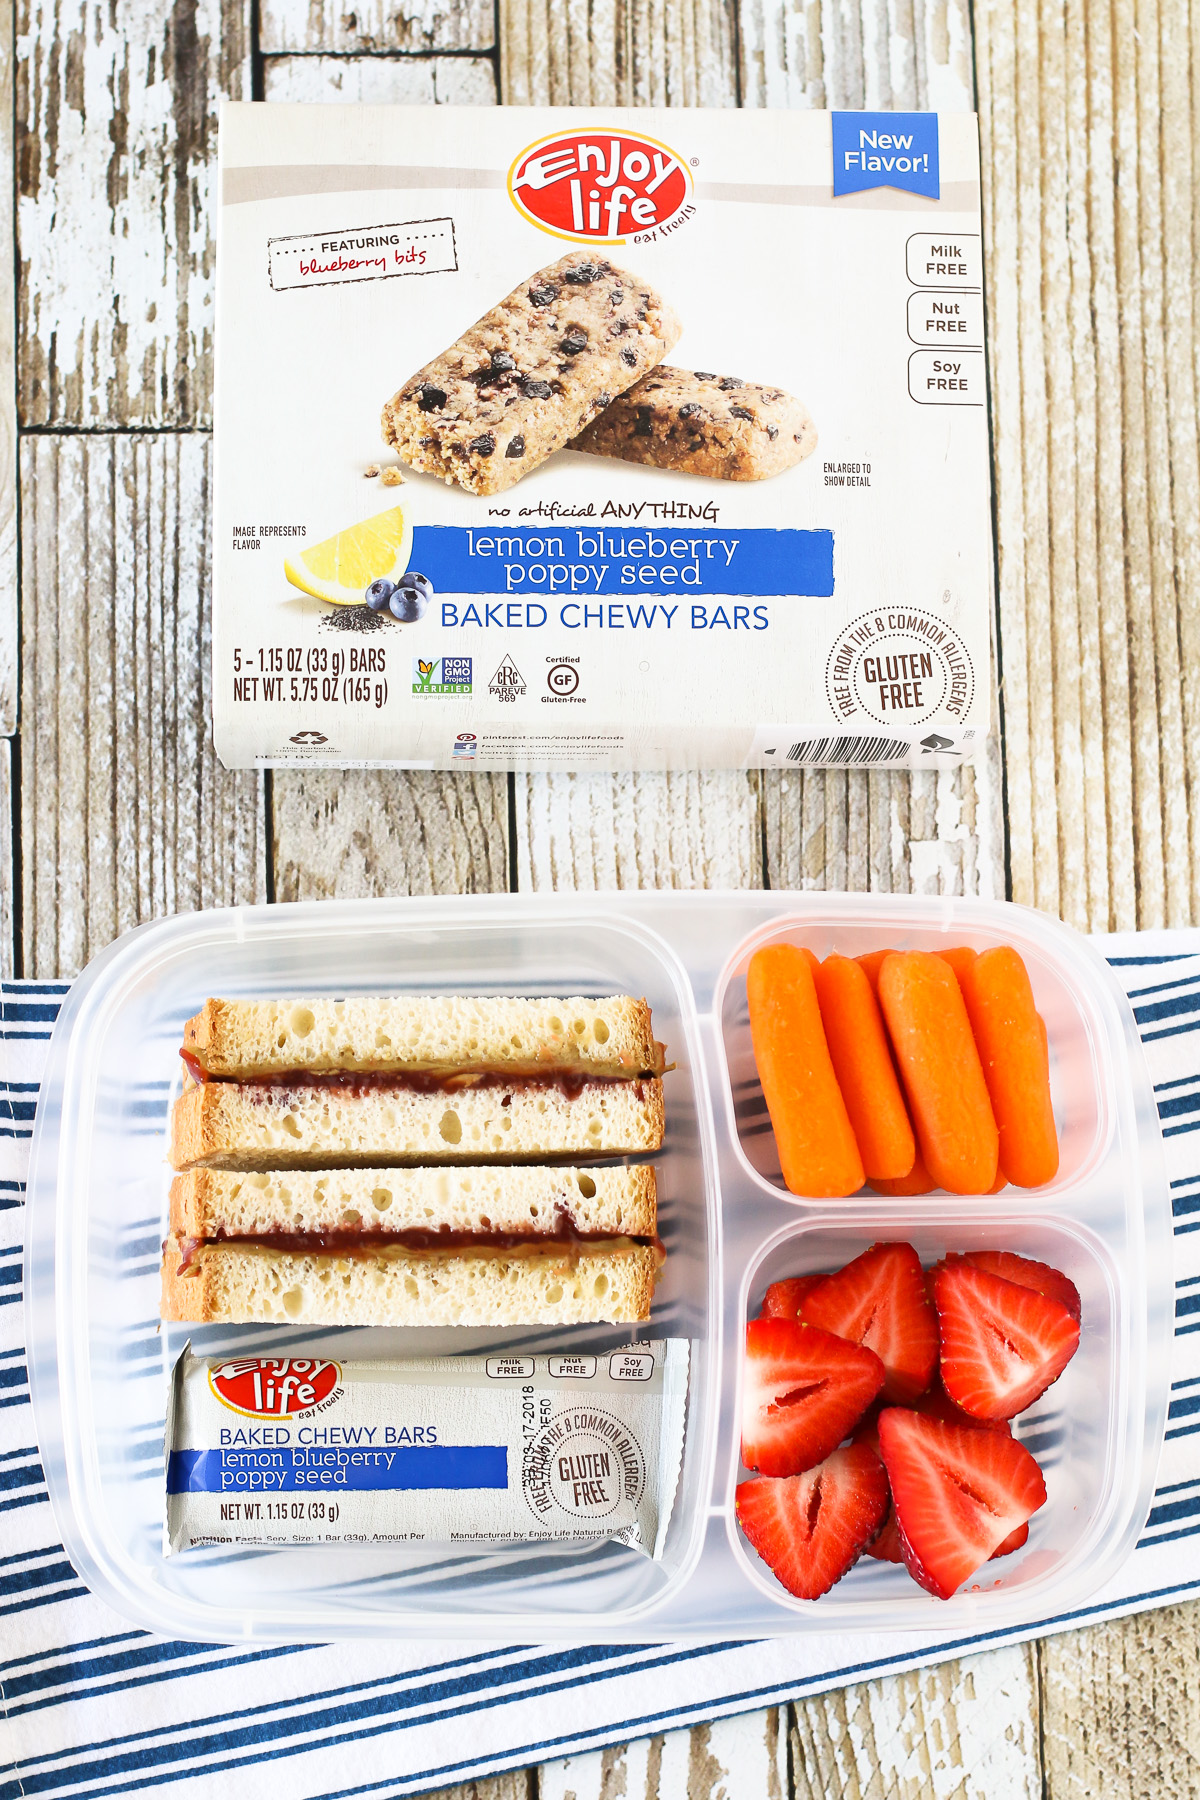 Easy Allergen Free School Lunches. Gluten free sunflower seed butter and jelly sandwich sticks, served with an Enjoy Life Baked Chewy Bar.